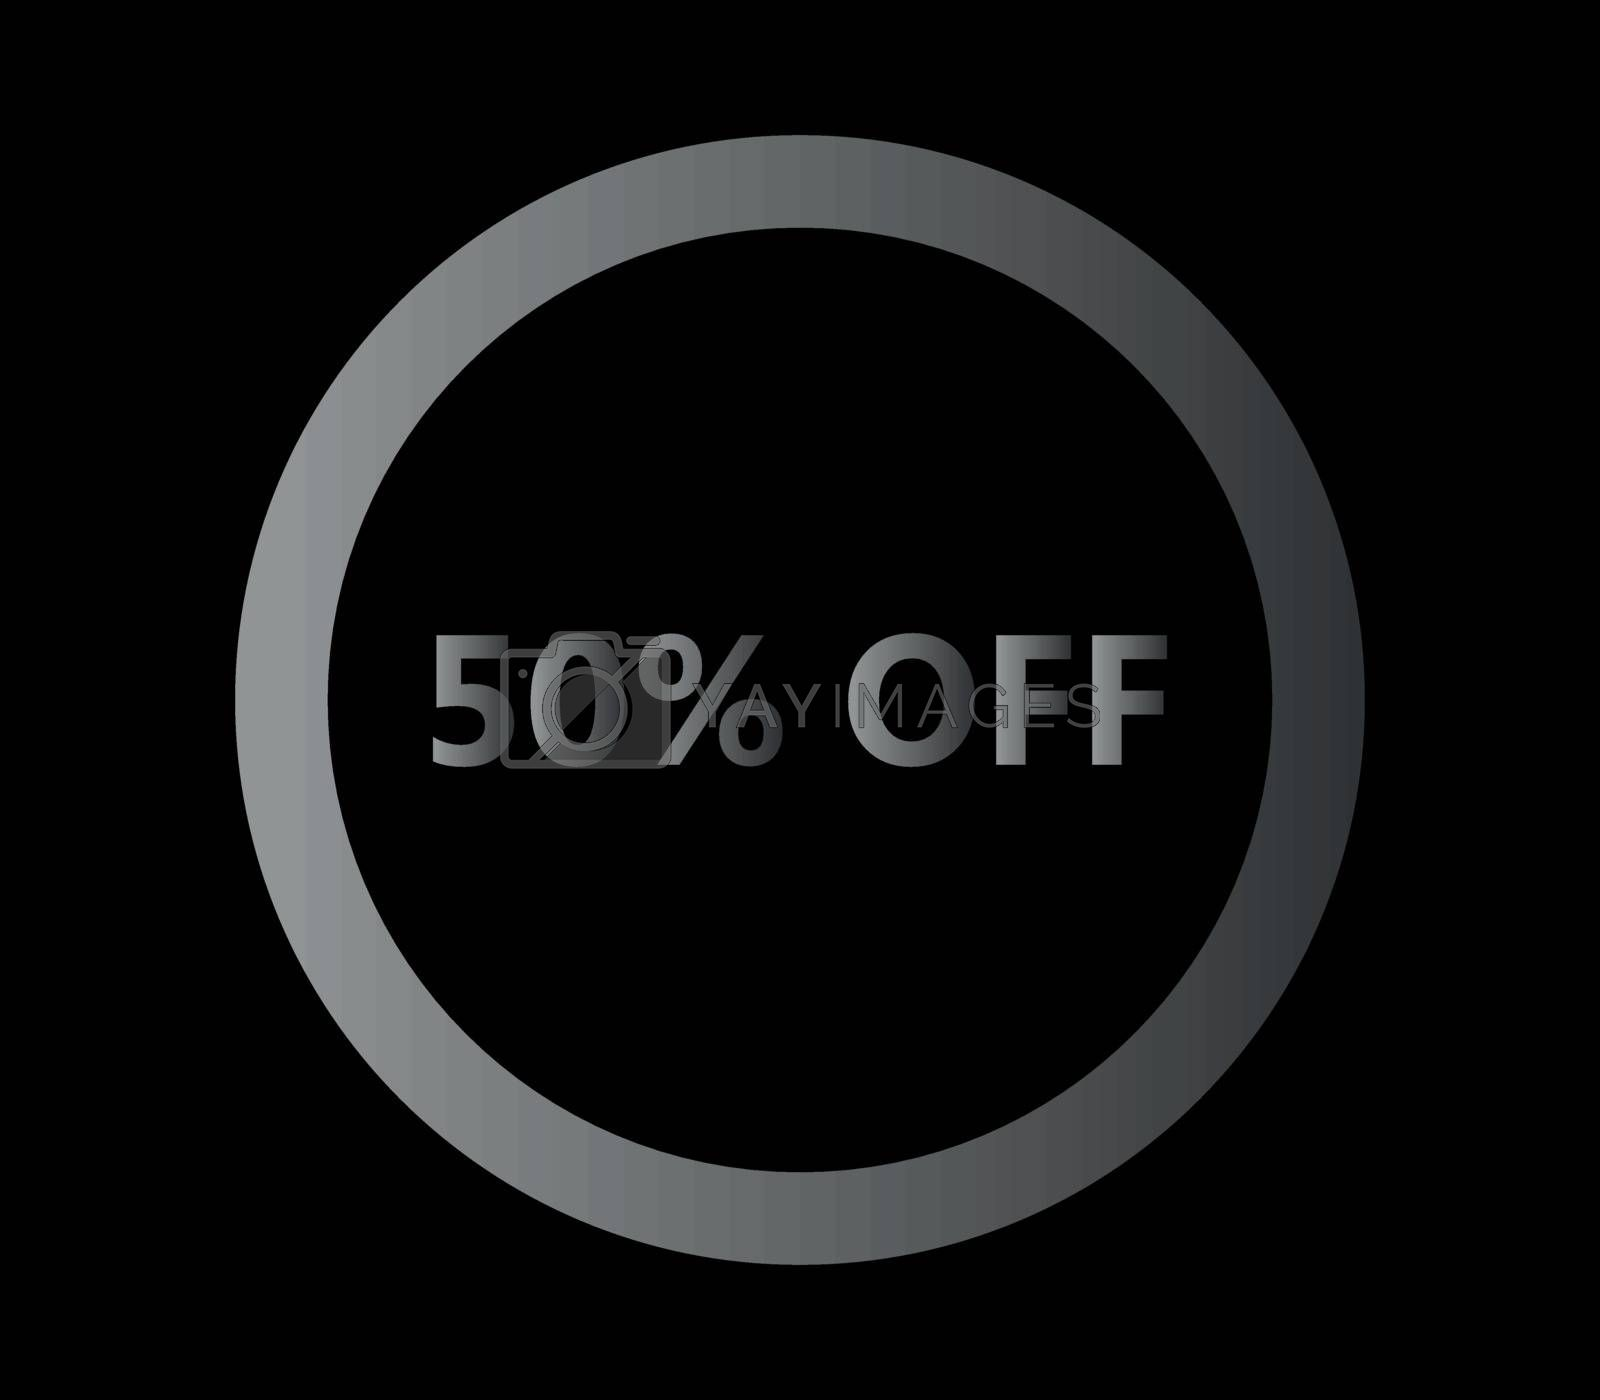 icon 50% off by Mark1987